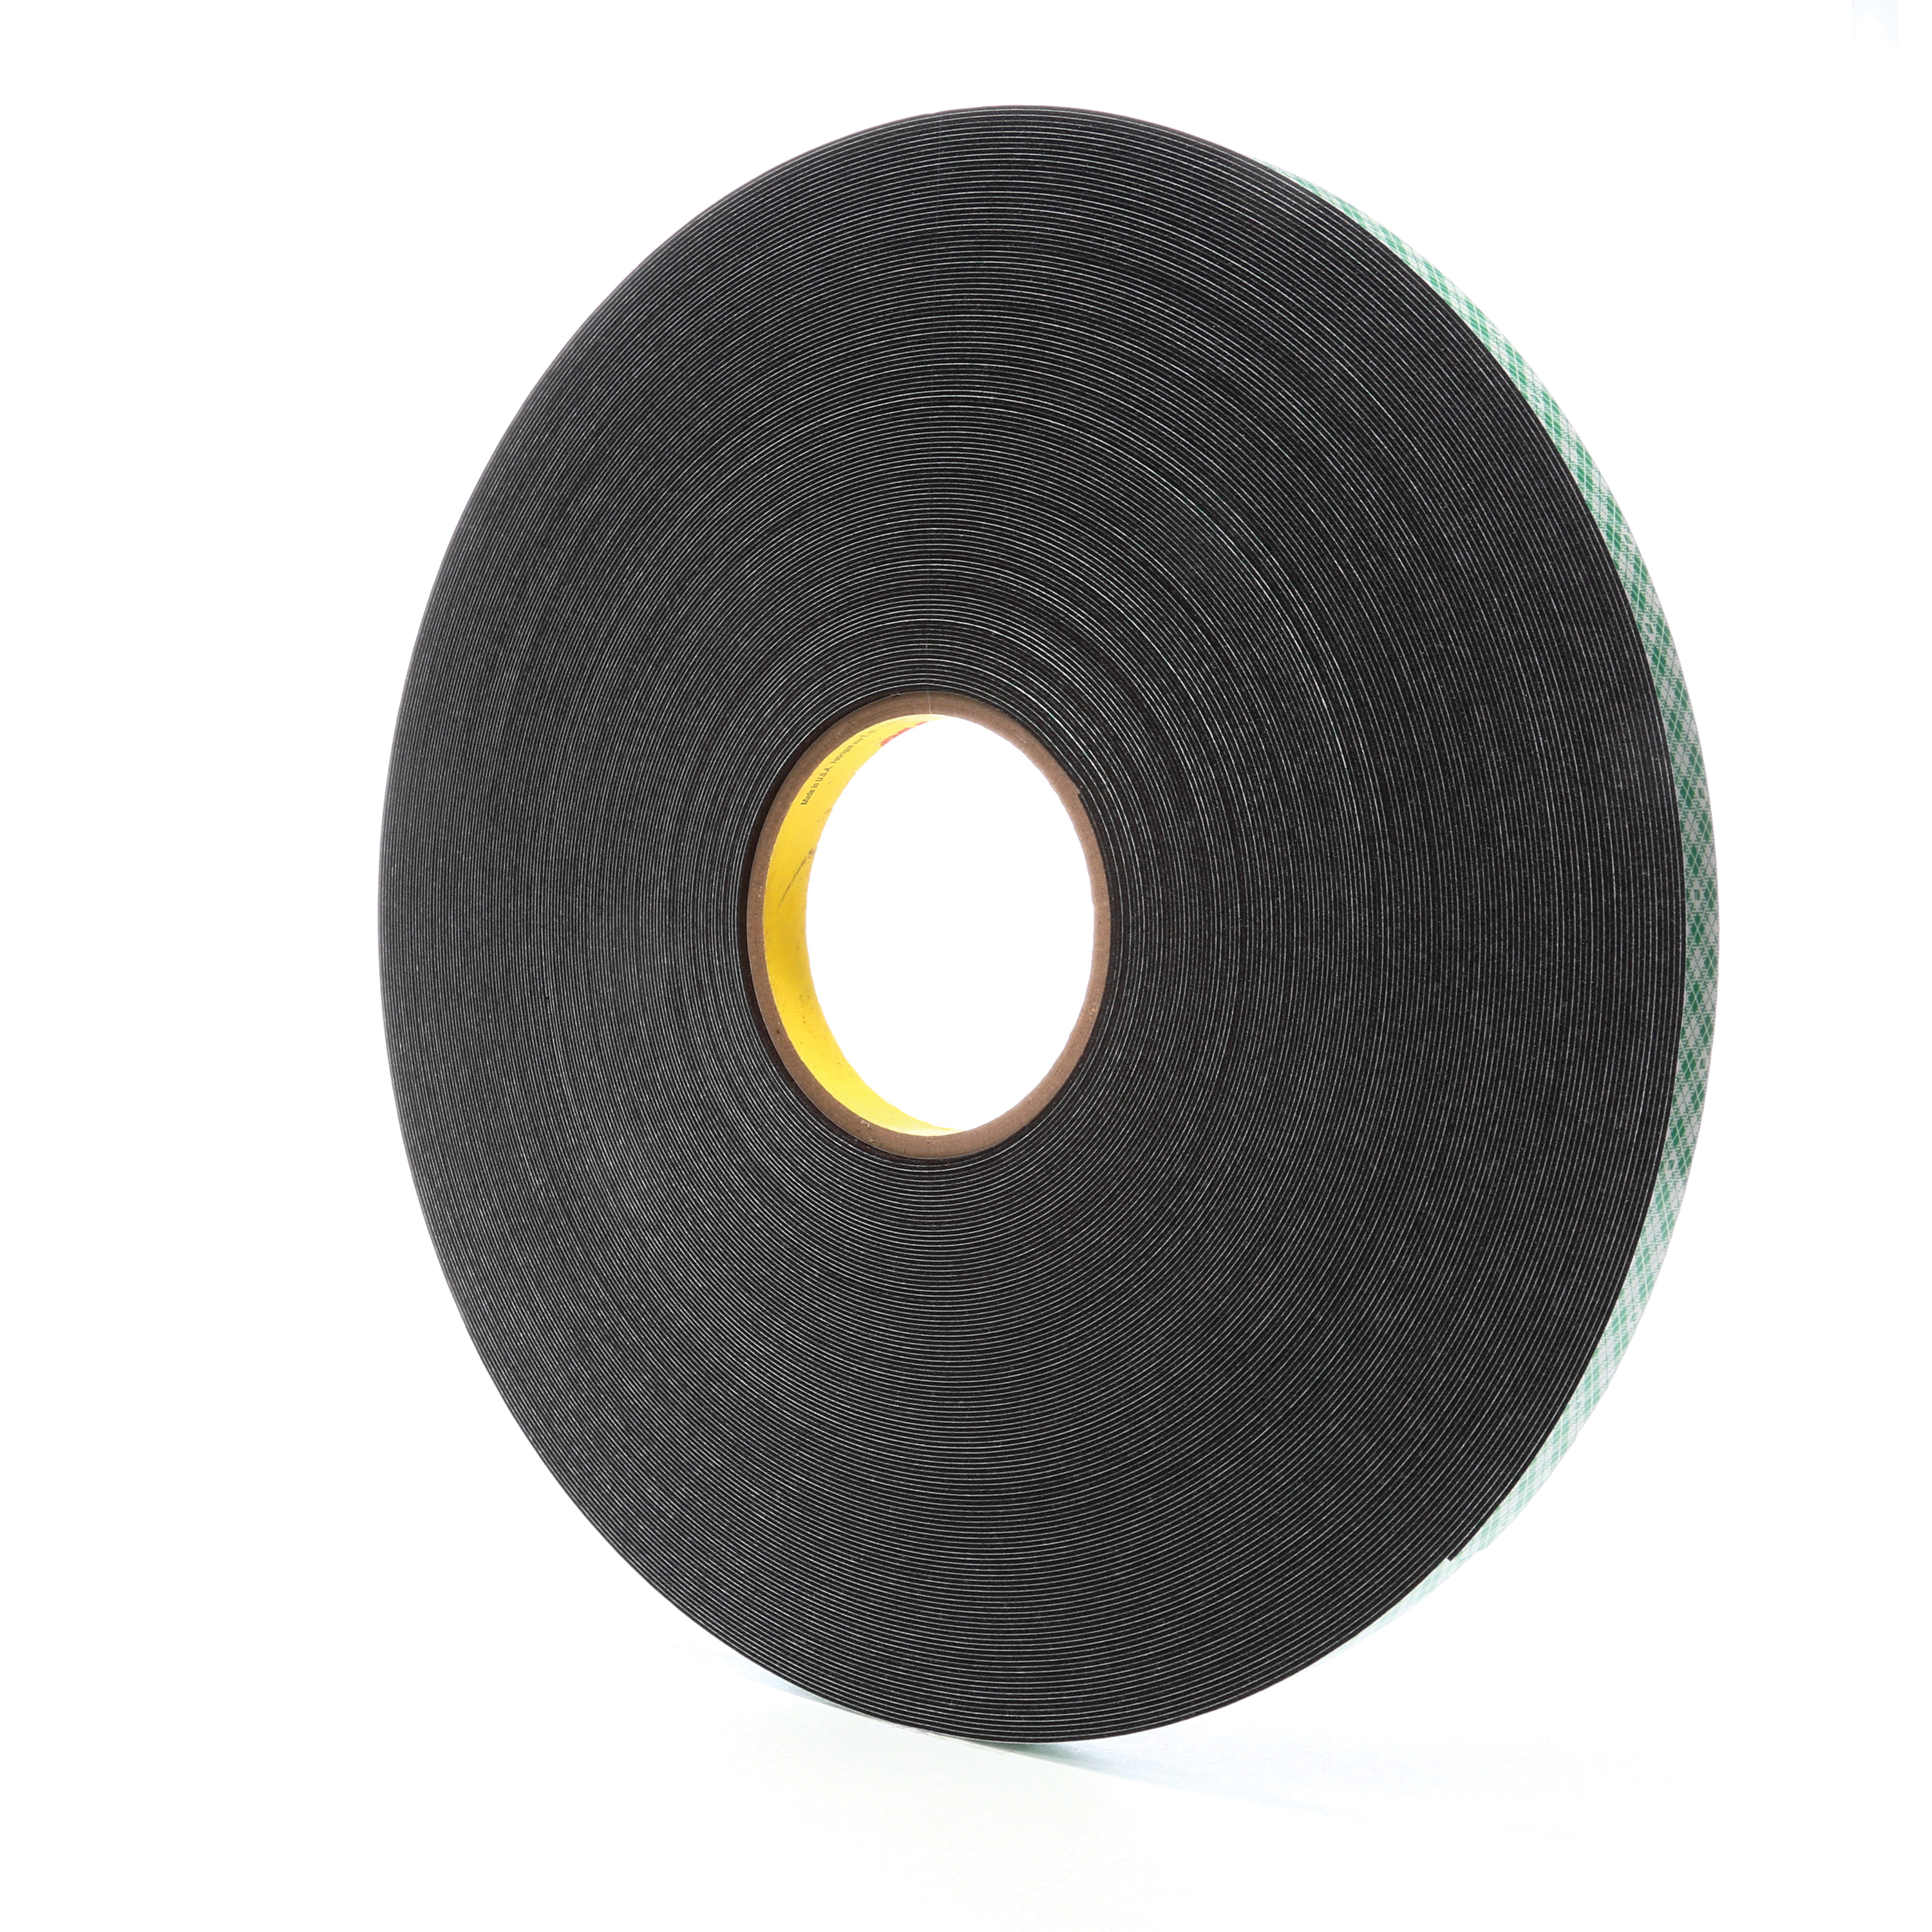 3M™ 021200-14667 Double Coated Tape, 72 yd L x 1/2 in W, 31 mil THK, Acrylic Adhesive, Urethane Foam Backing, Black